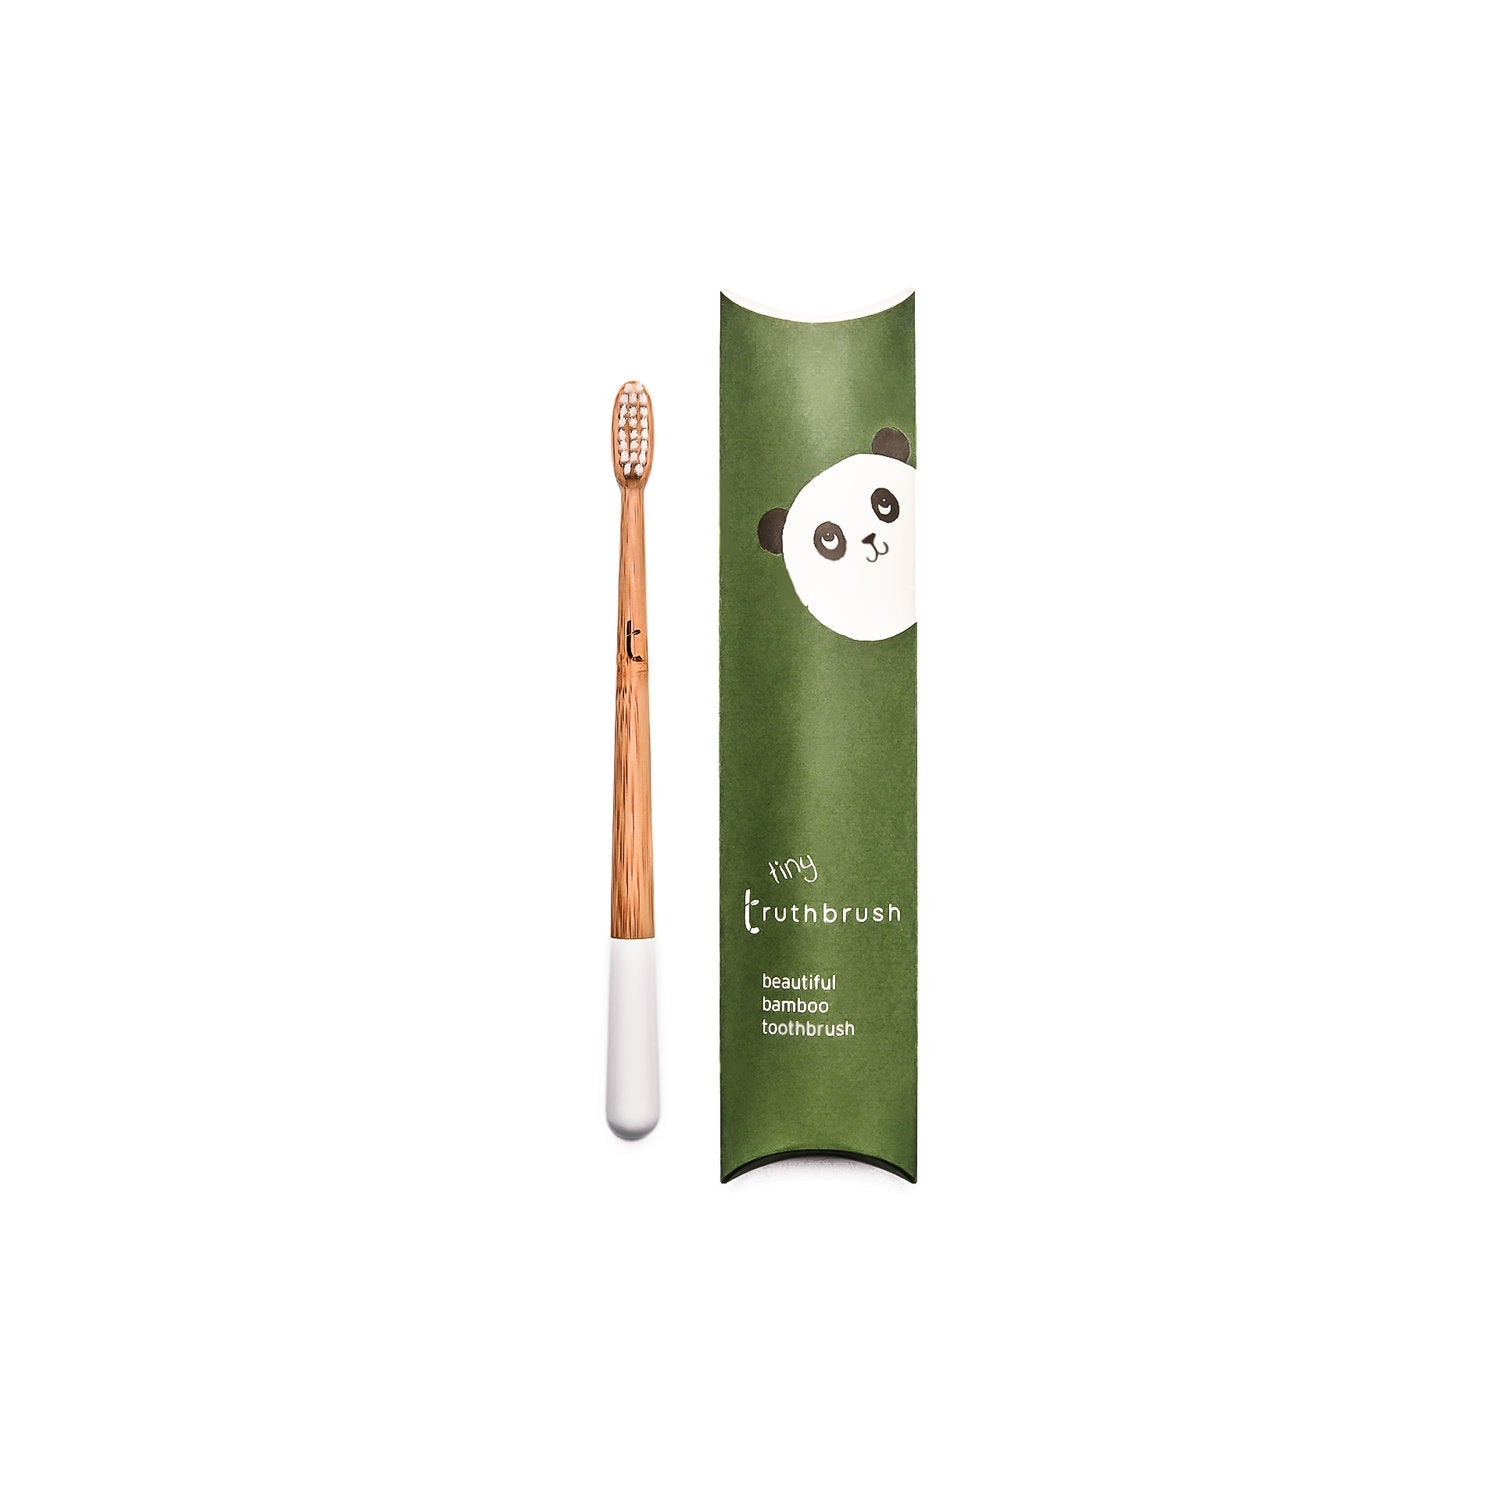 Truthbrush Tiny Bamboo Toothbrush - Cloud White